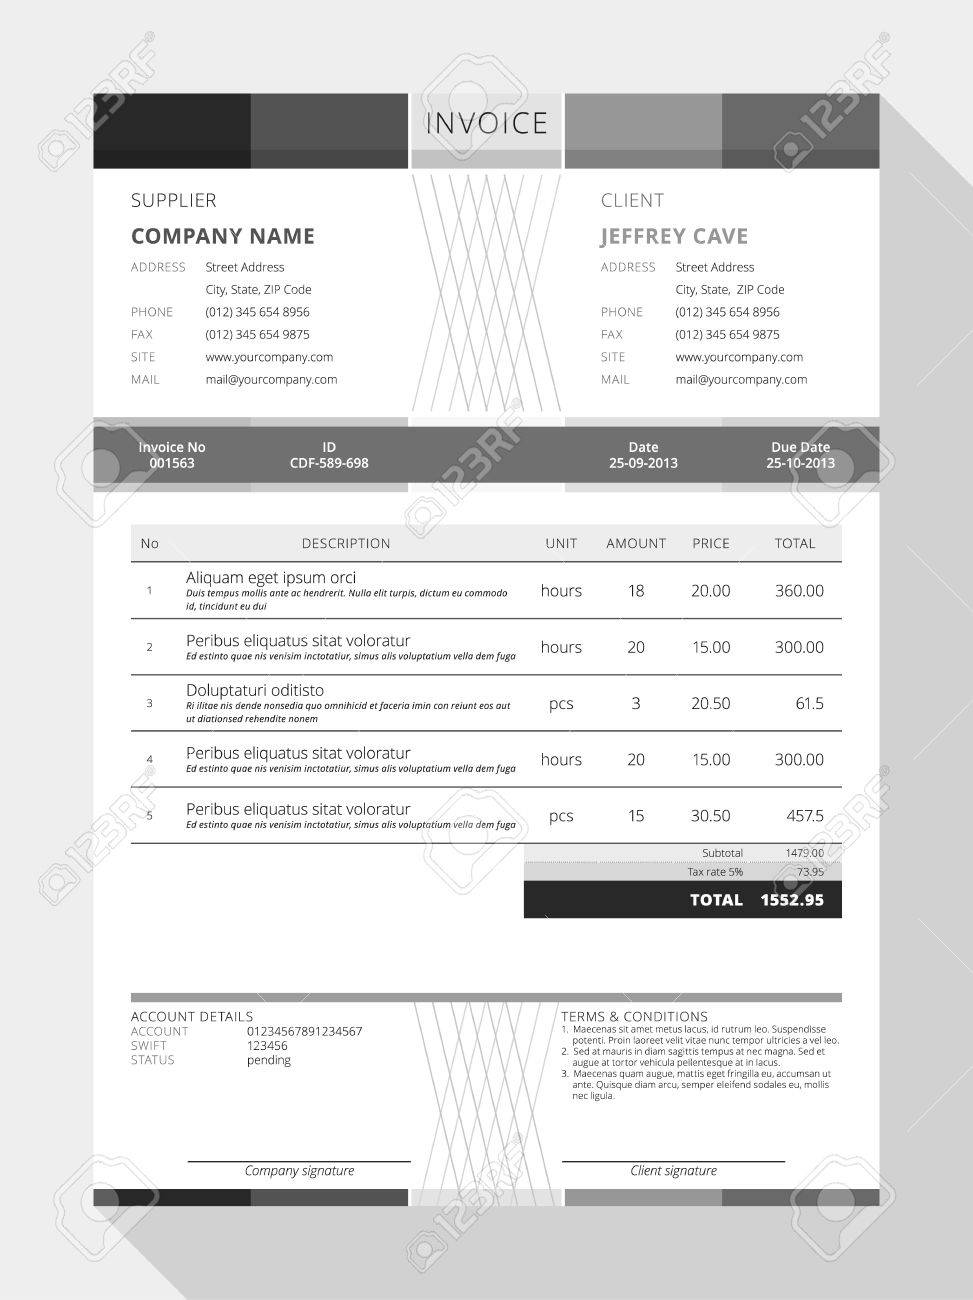 Imagerackus  Splendid Design An Invoice  Professional Graphic Design Invoice  With Outstanding Vector Customizable Invoice Form Template Design Vector   Design An Invoice With Appealing Receipt For Mac And Cheese Also Receipt For Bread Pudding In Addition Customer Receipt Template And Title Application Receipt As Well As Charity Receipt Additionally Copy Of A Receipt From Happytomco With Imagerackus  Outstanding Design An Invoice  Professional Graphic Design Invoice  With Appealing Vector Customizable Invoice Form Template Design Vector   Design An Invoice And Splendid Receipt For Mac And Cheese Also Receipt For Bread Pudding In Addition Customer Receipt Template From Happytomco